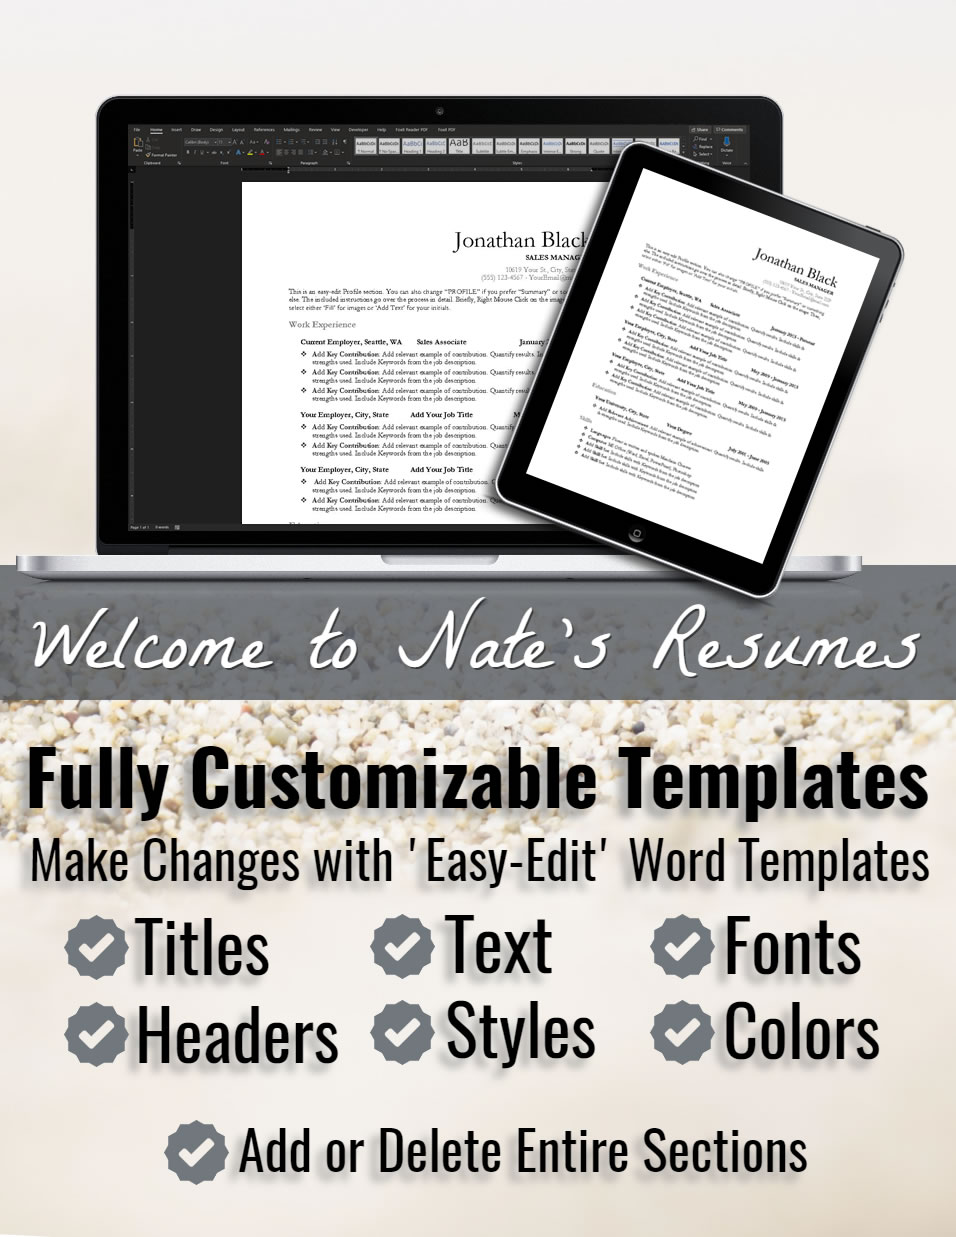 Beginnings - Make-Easy-Edits-to-Templates-LONG